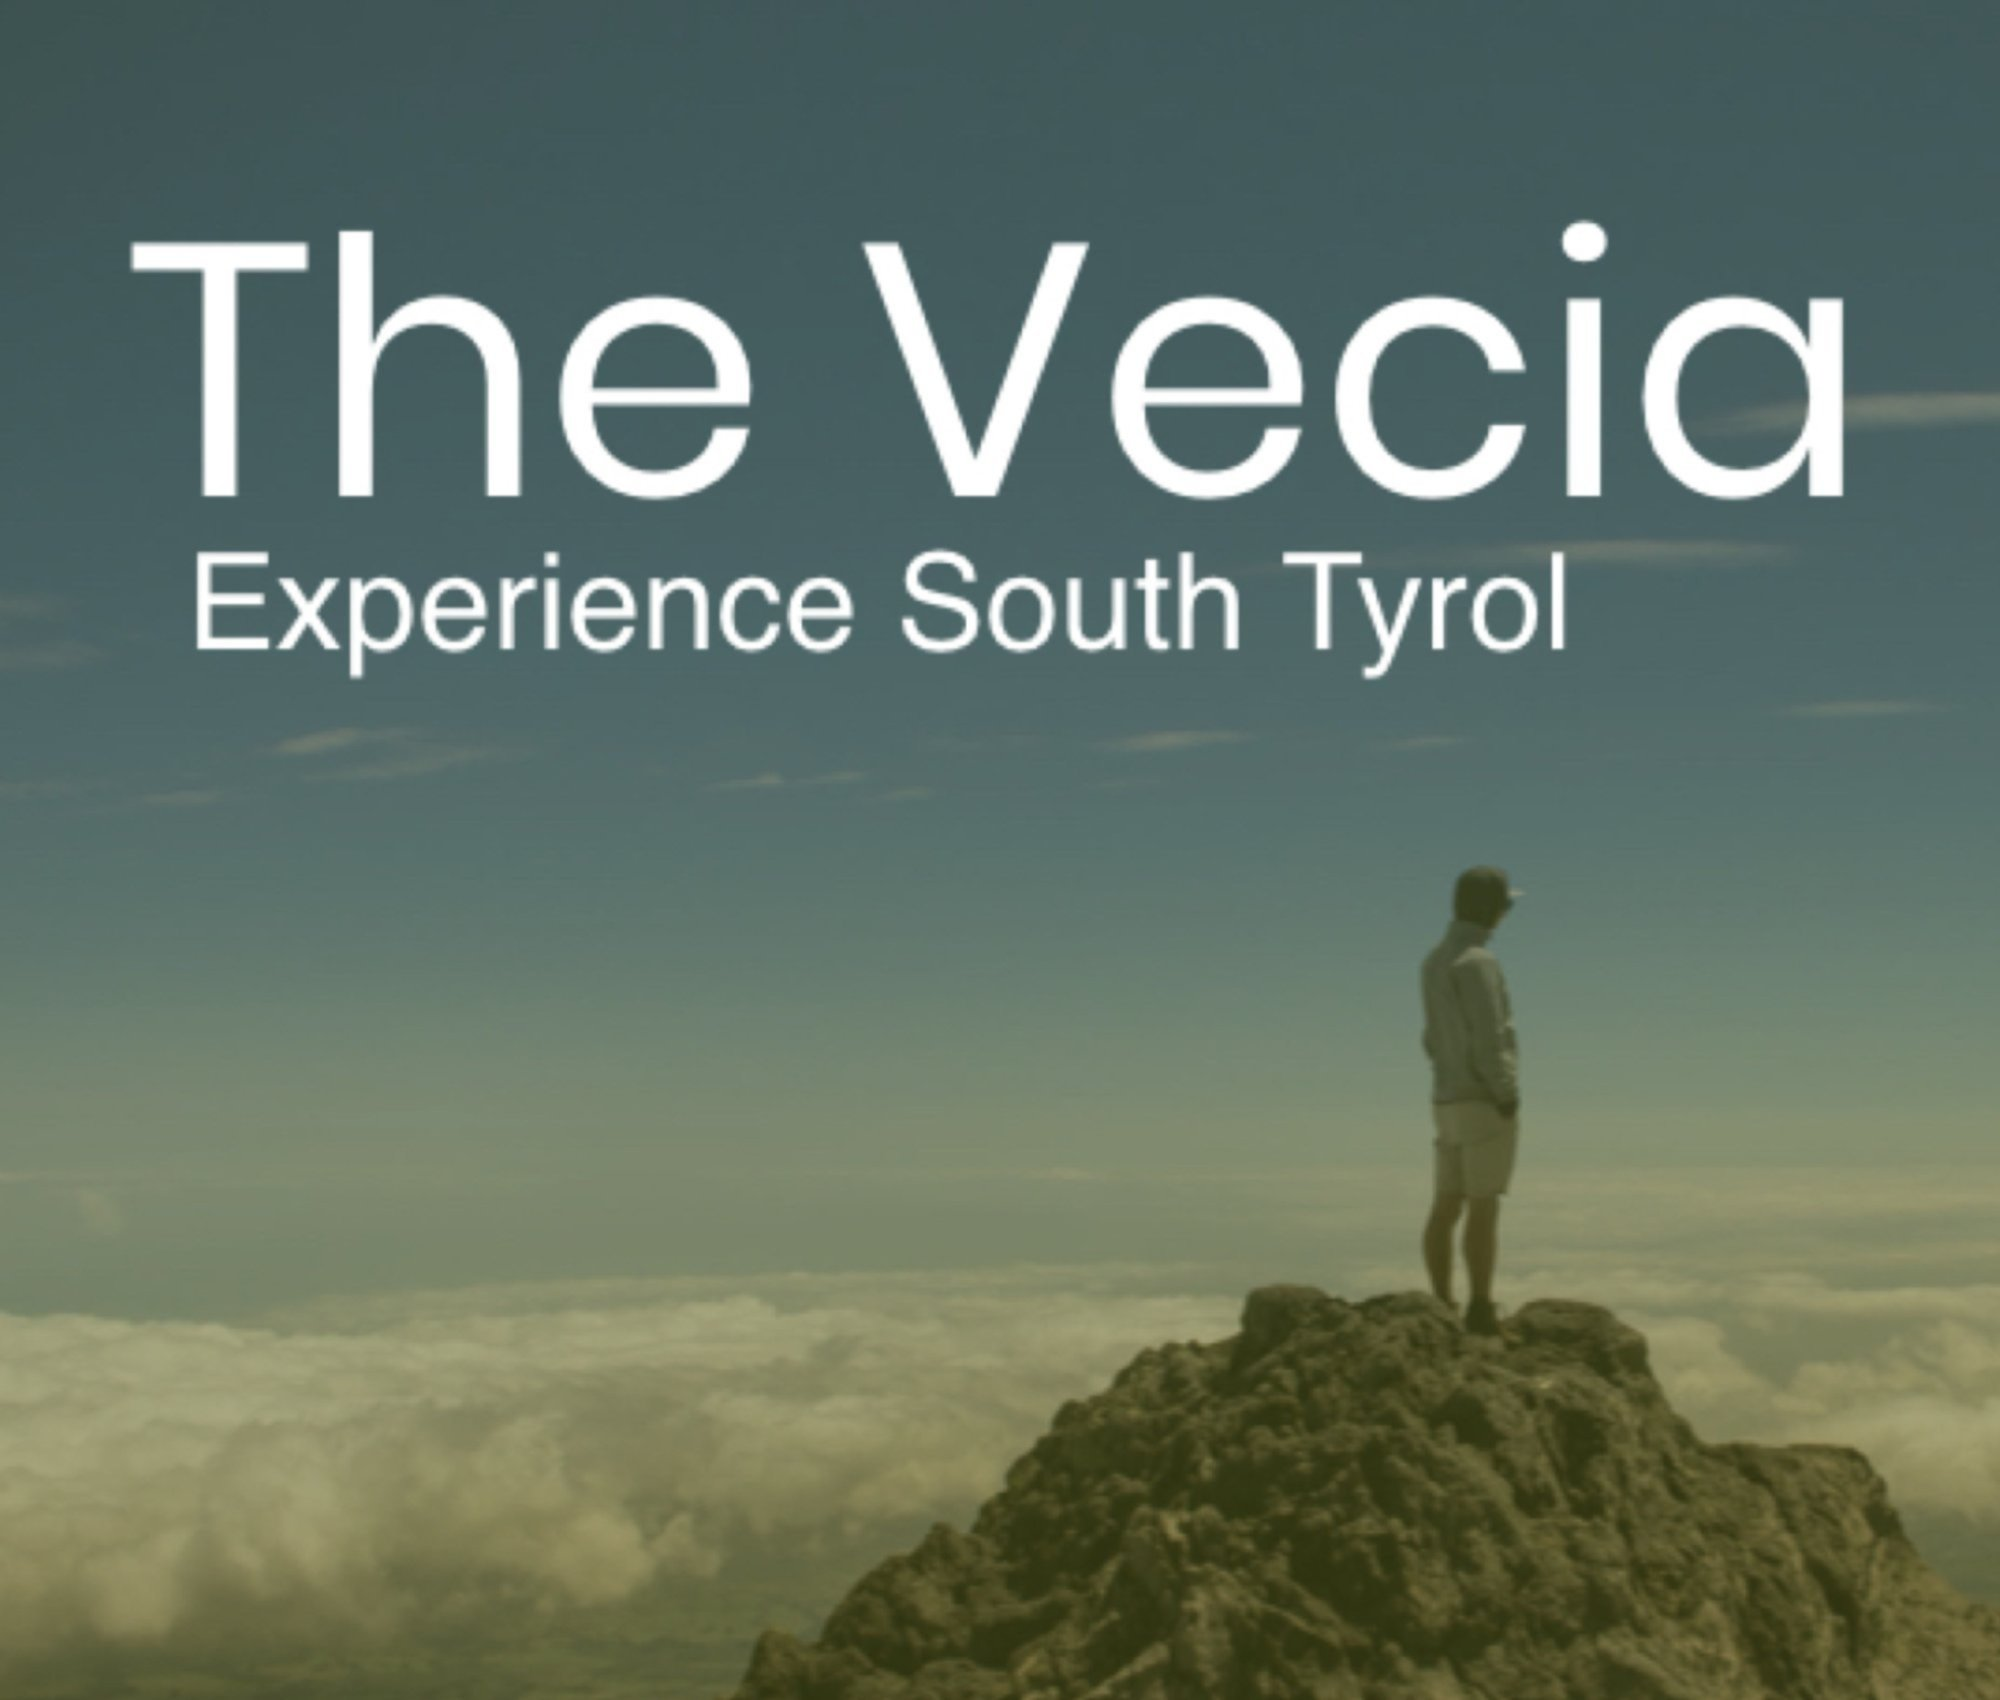 The Vecia - Experience South Tyrol